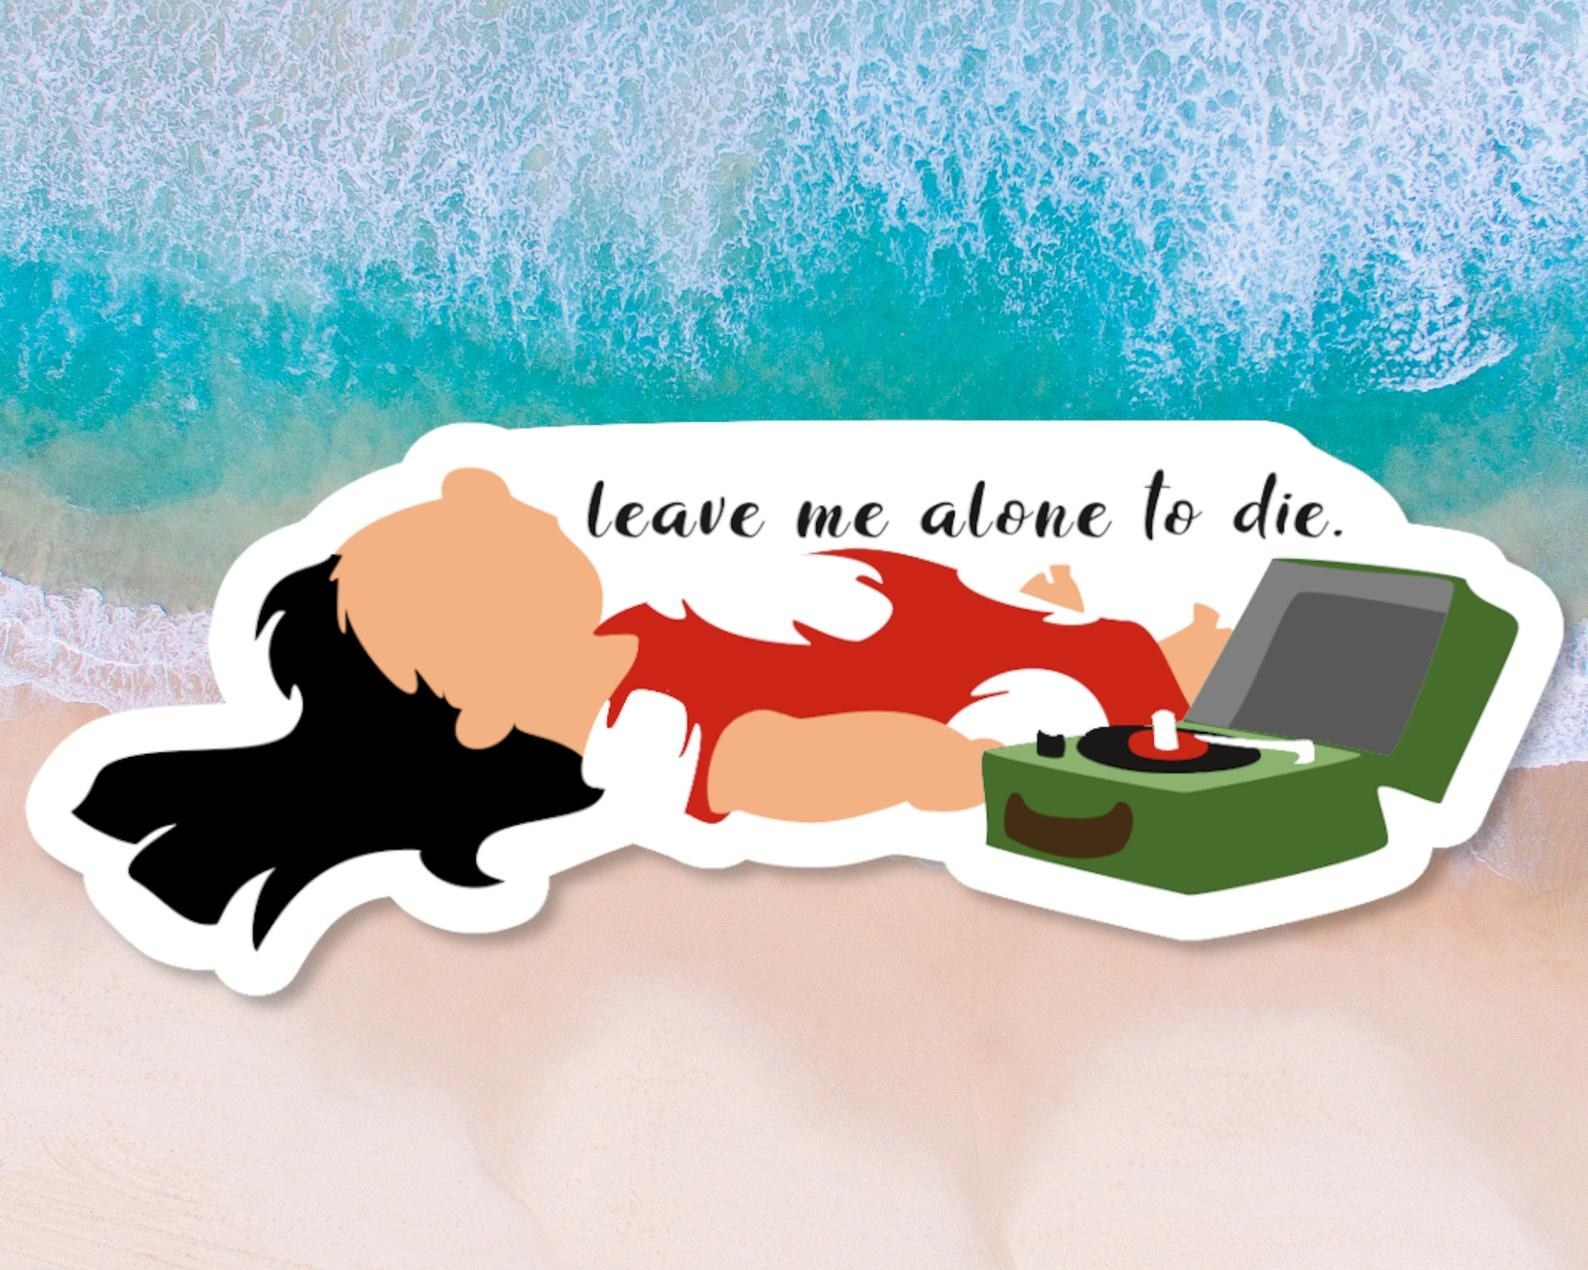 a sticker of lilo laying on the floor next to the record player